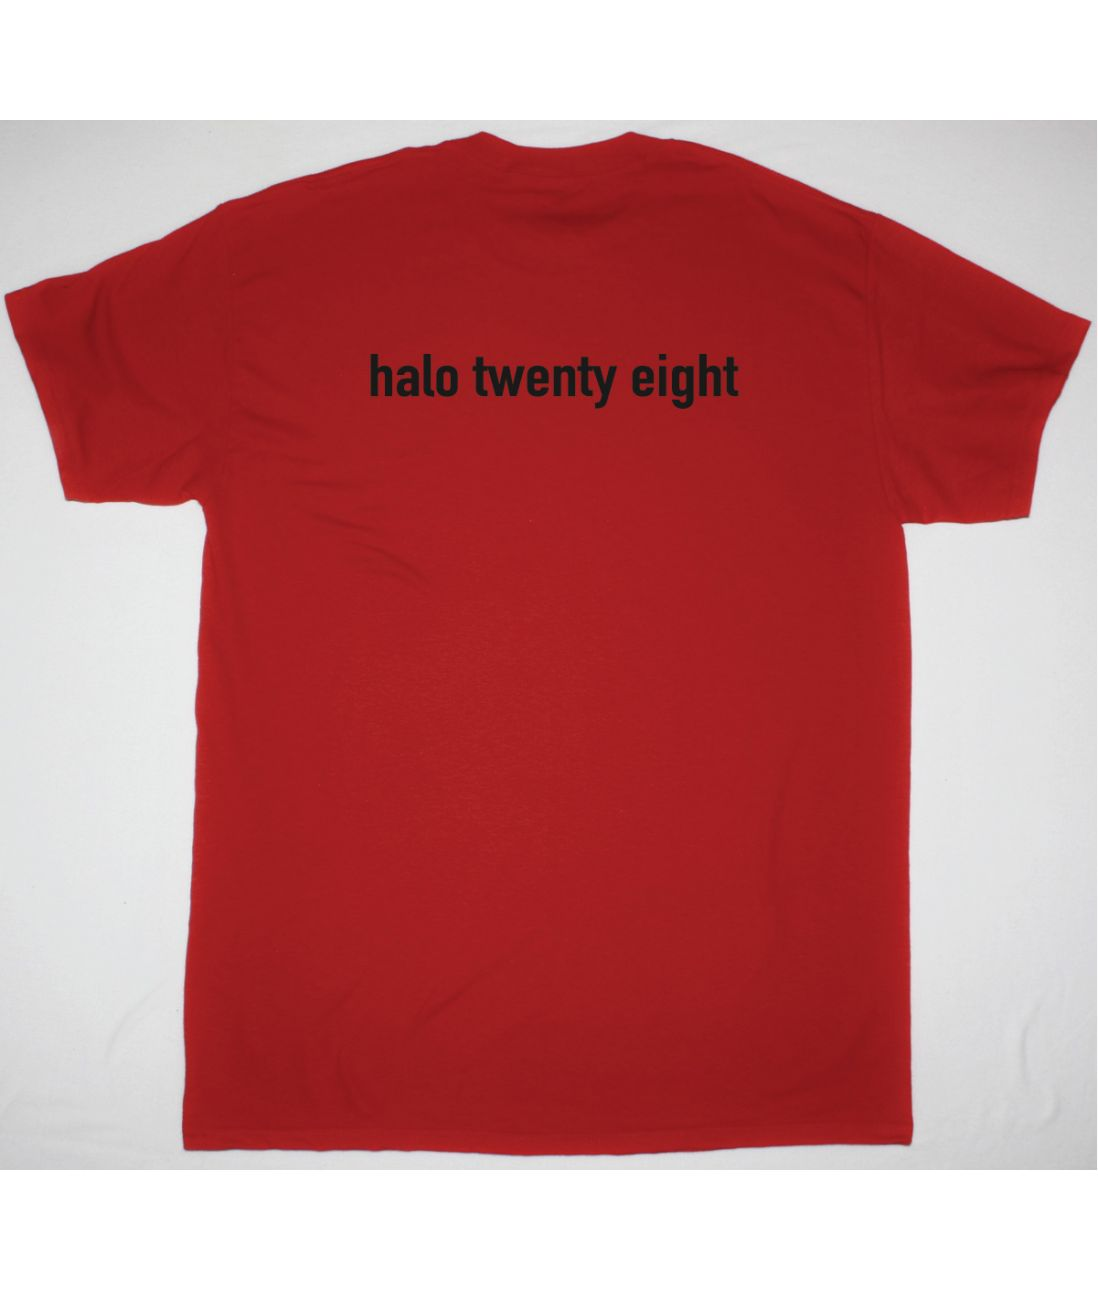 NINE INCH NAILS CORNER BOX NEW RED T SHIRT